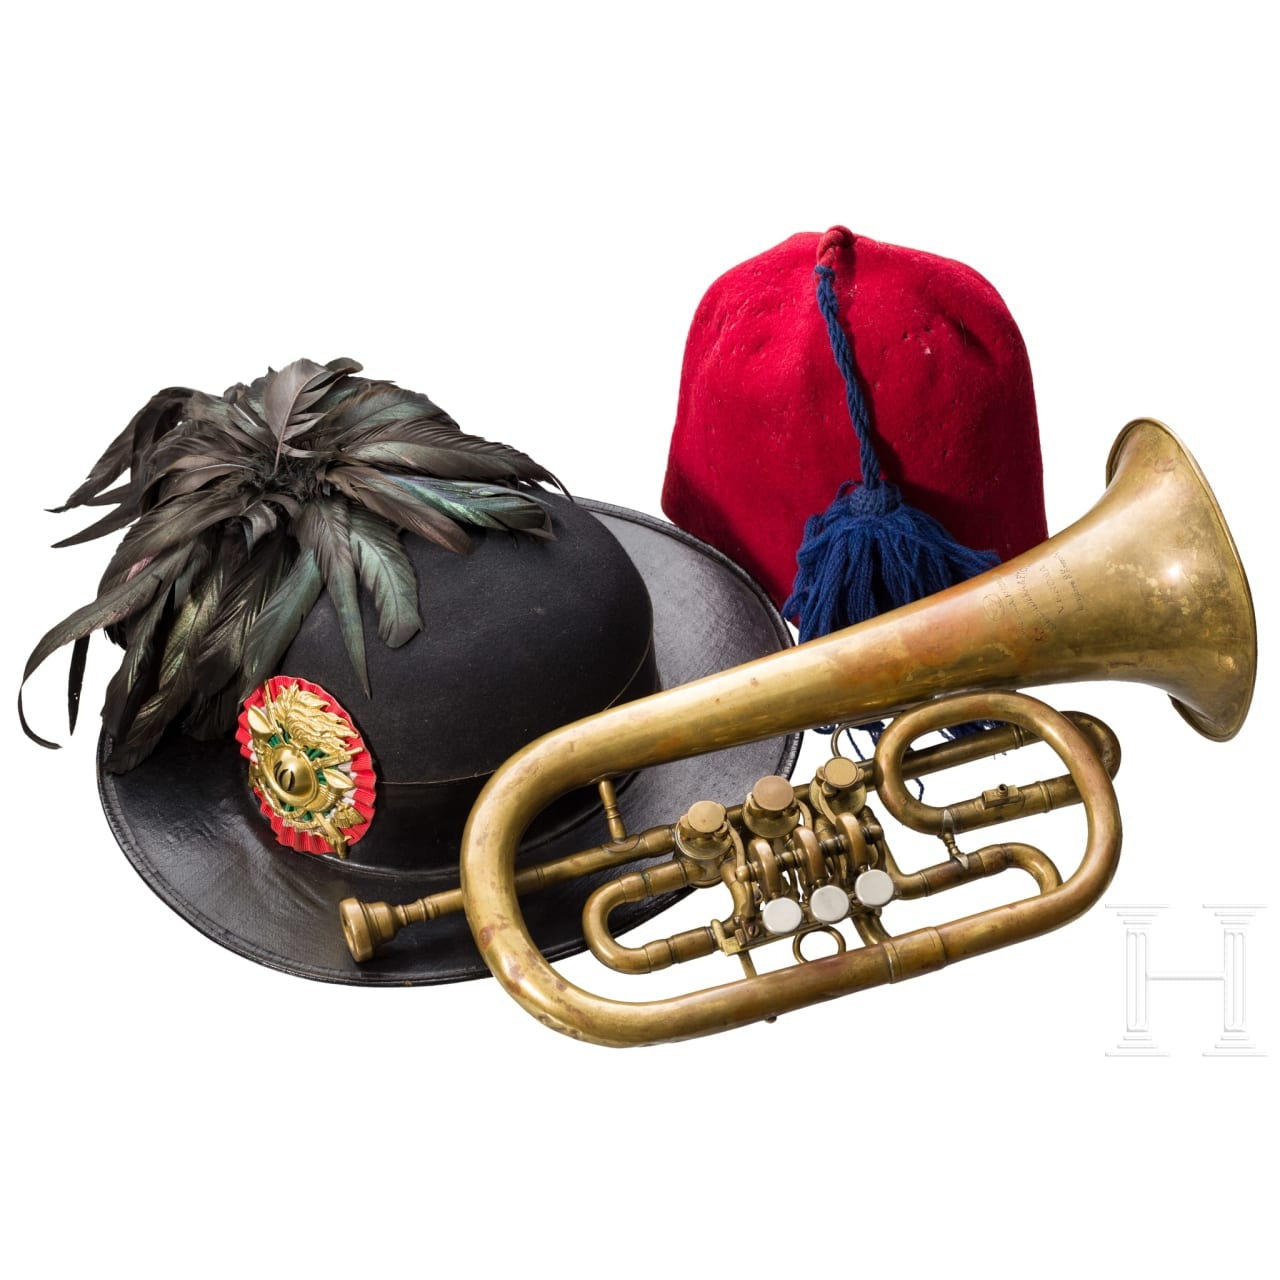 A hat for Bersaglieri, a trumpet, a fez, 1st half of the 20th century